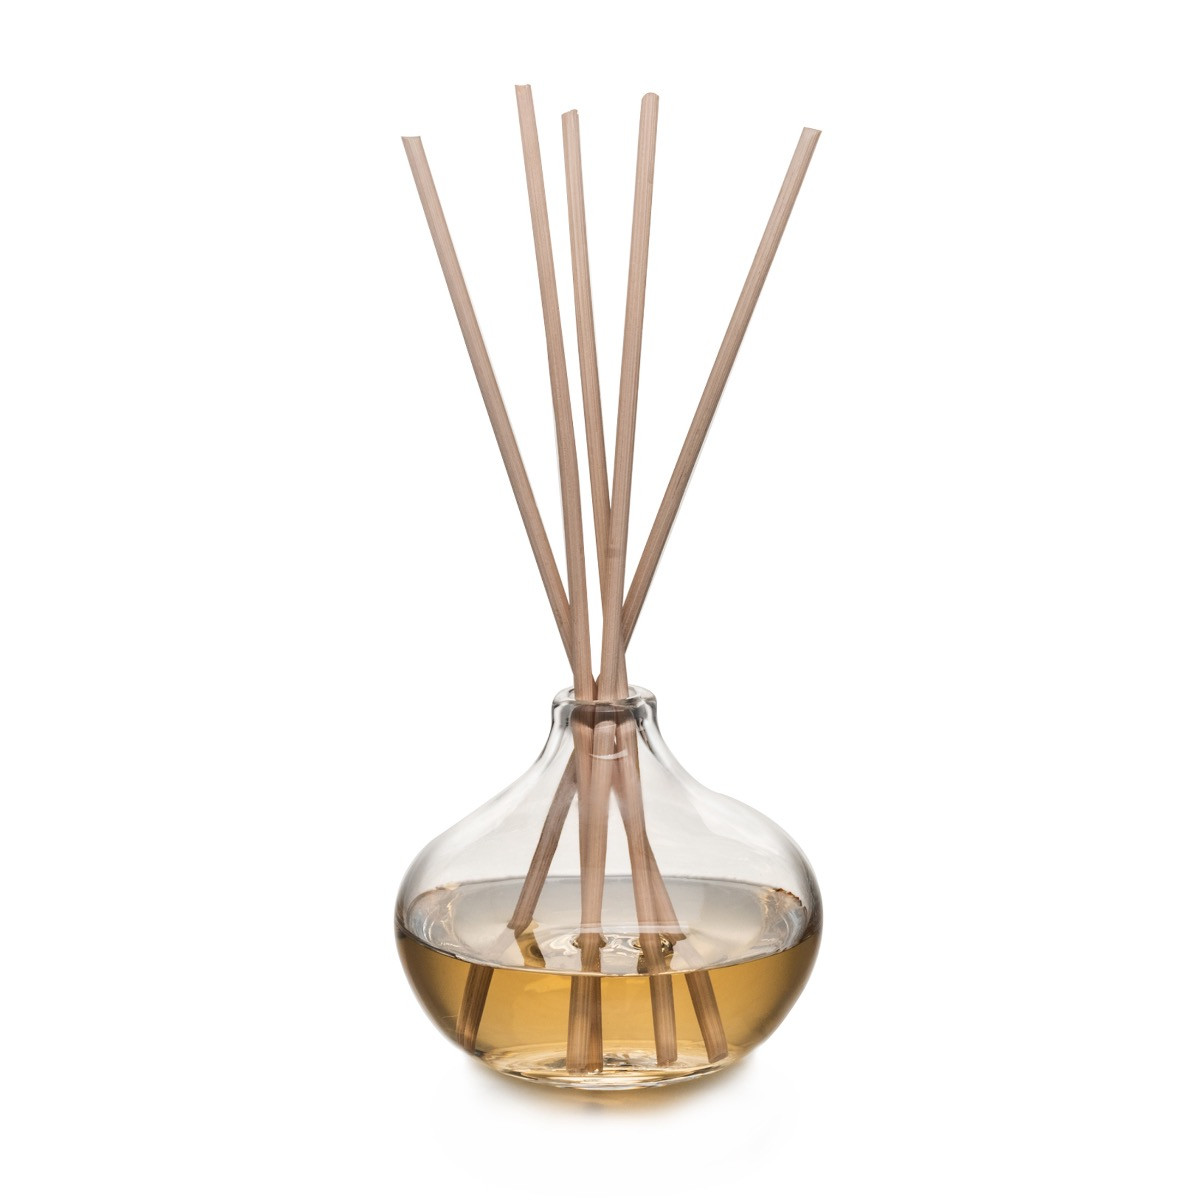 simon pearce bud vase of peony blossom diffuser in gift box inside 8808 8809 8810 8811 diffuser in gift box 2